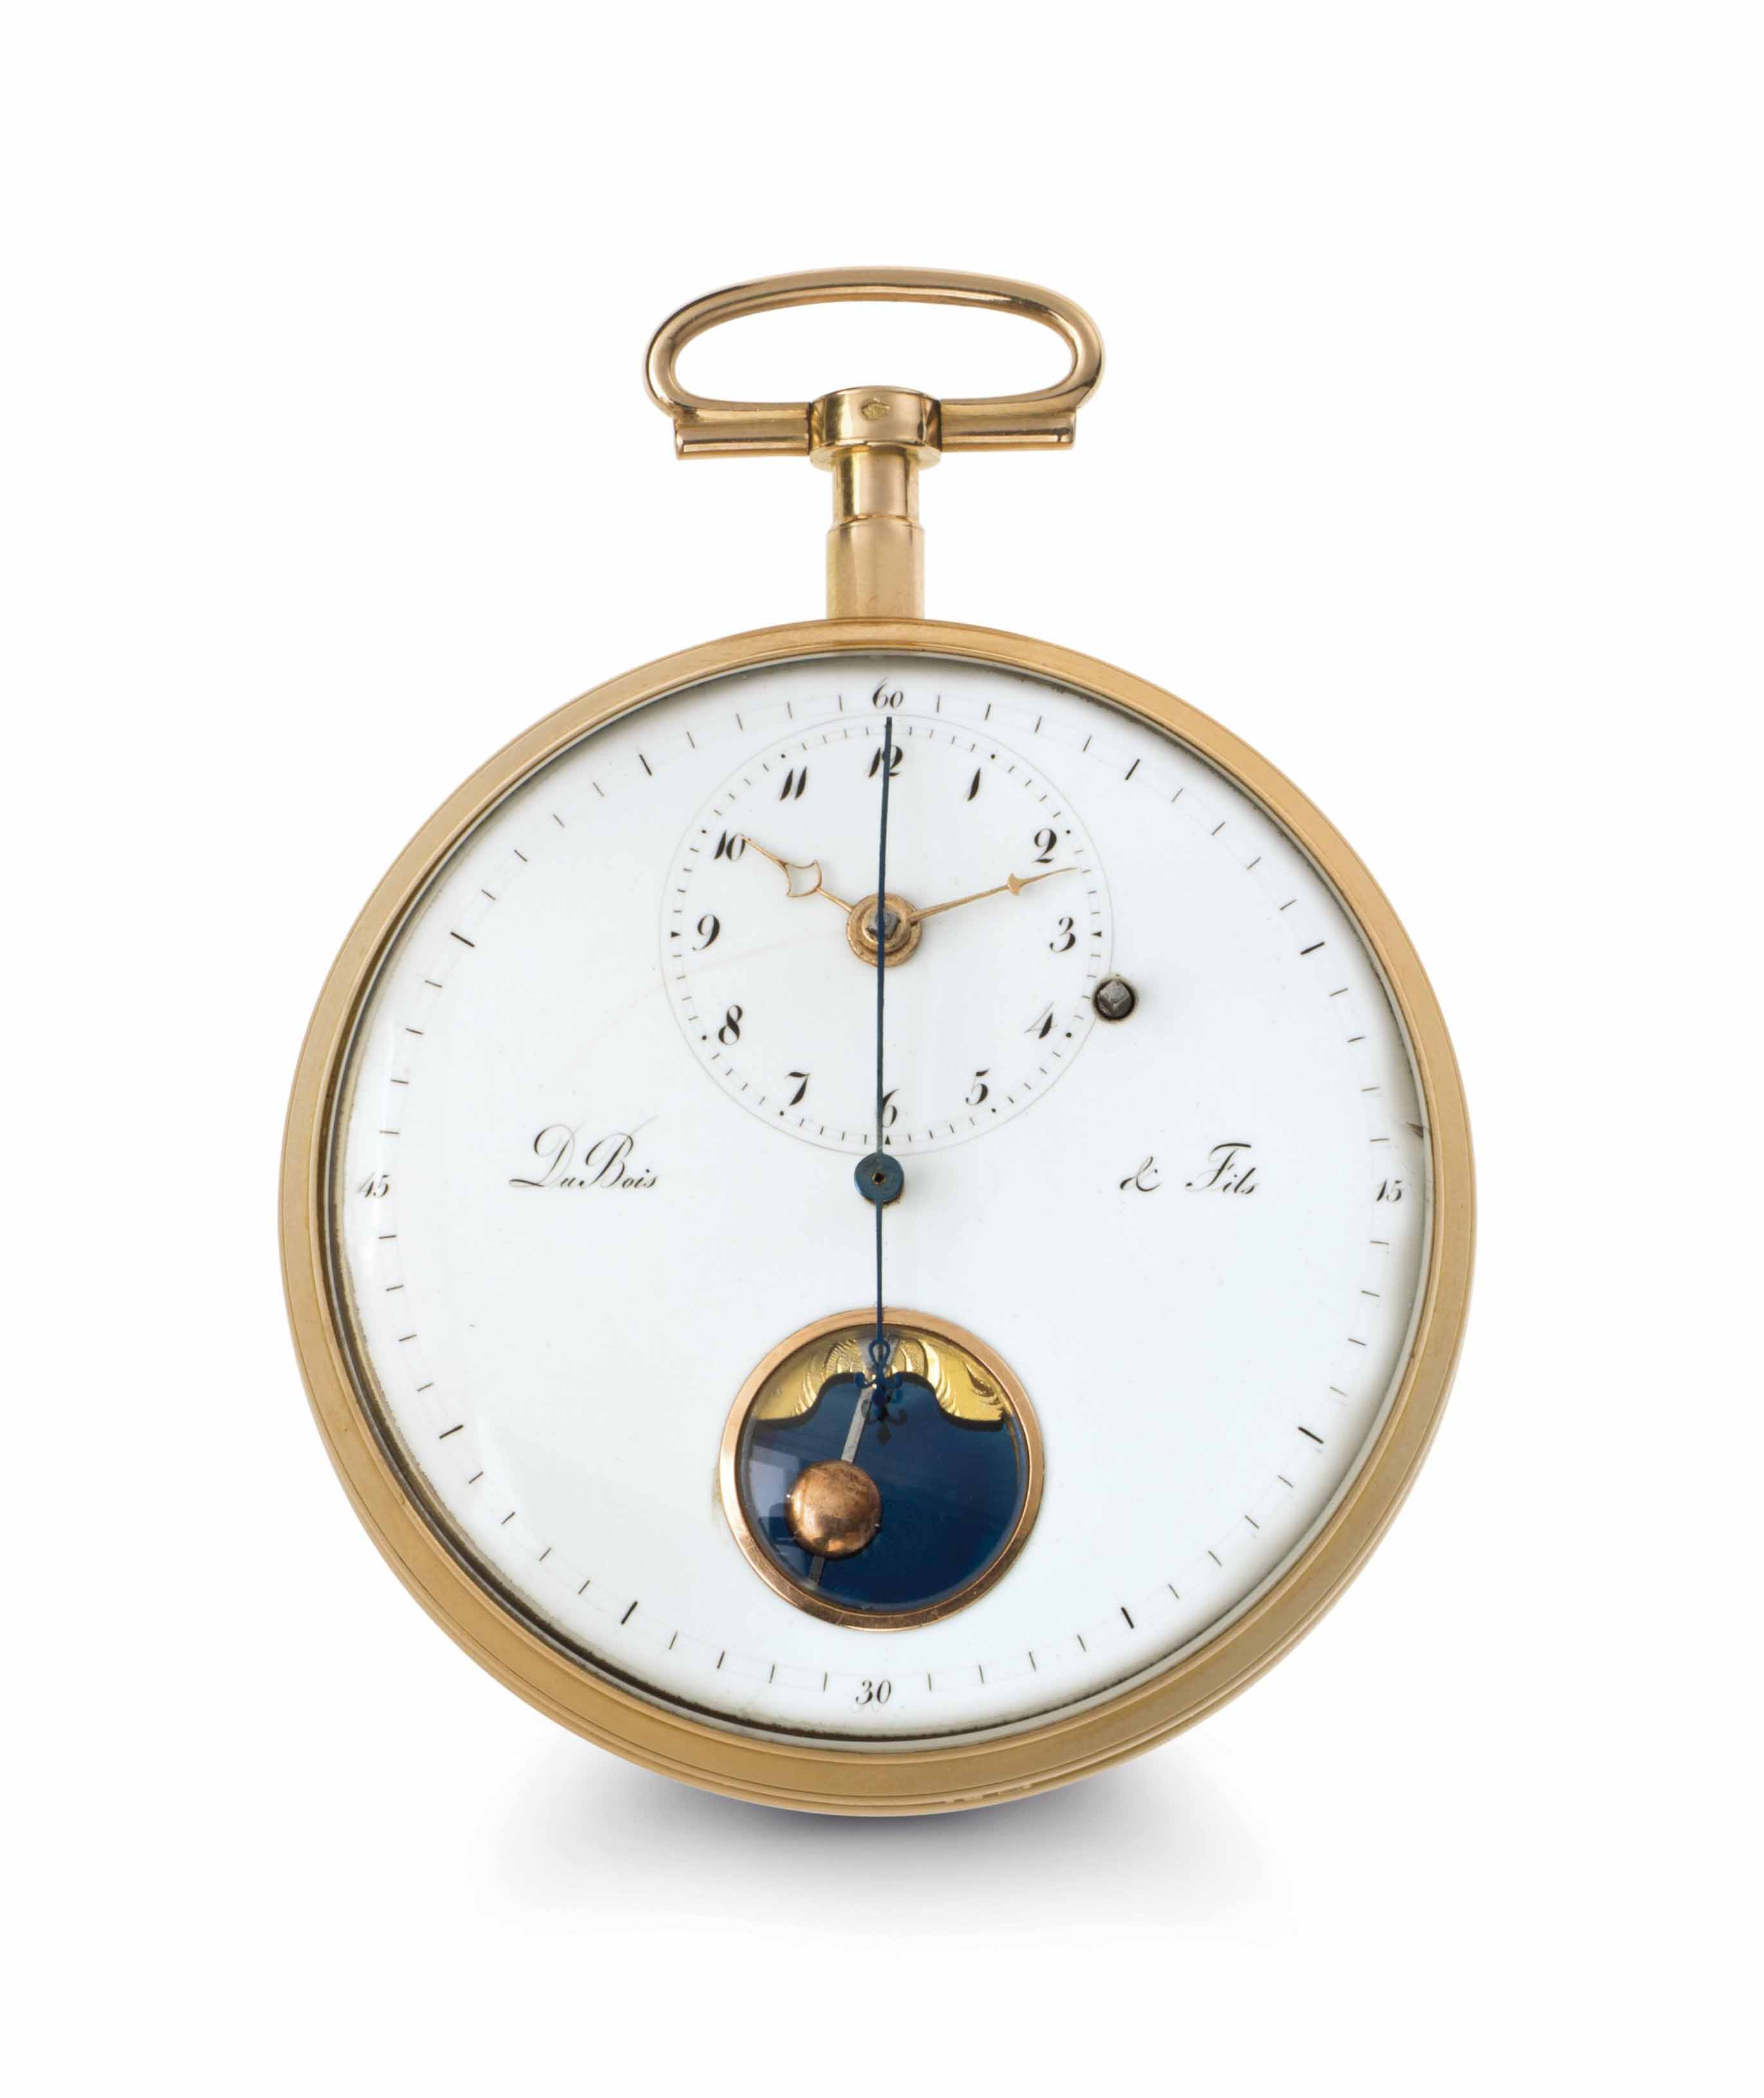 Dubois & Fils. A Fine 18k Gold Openface Pirouette Escapement Keywound Watch with Dead Center Seconds and Mock Pendulum Made for the Chinese Market with Later Case